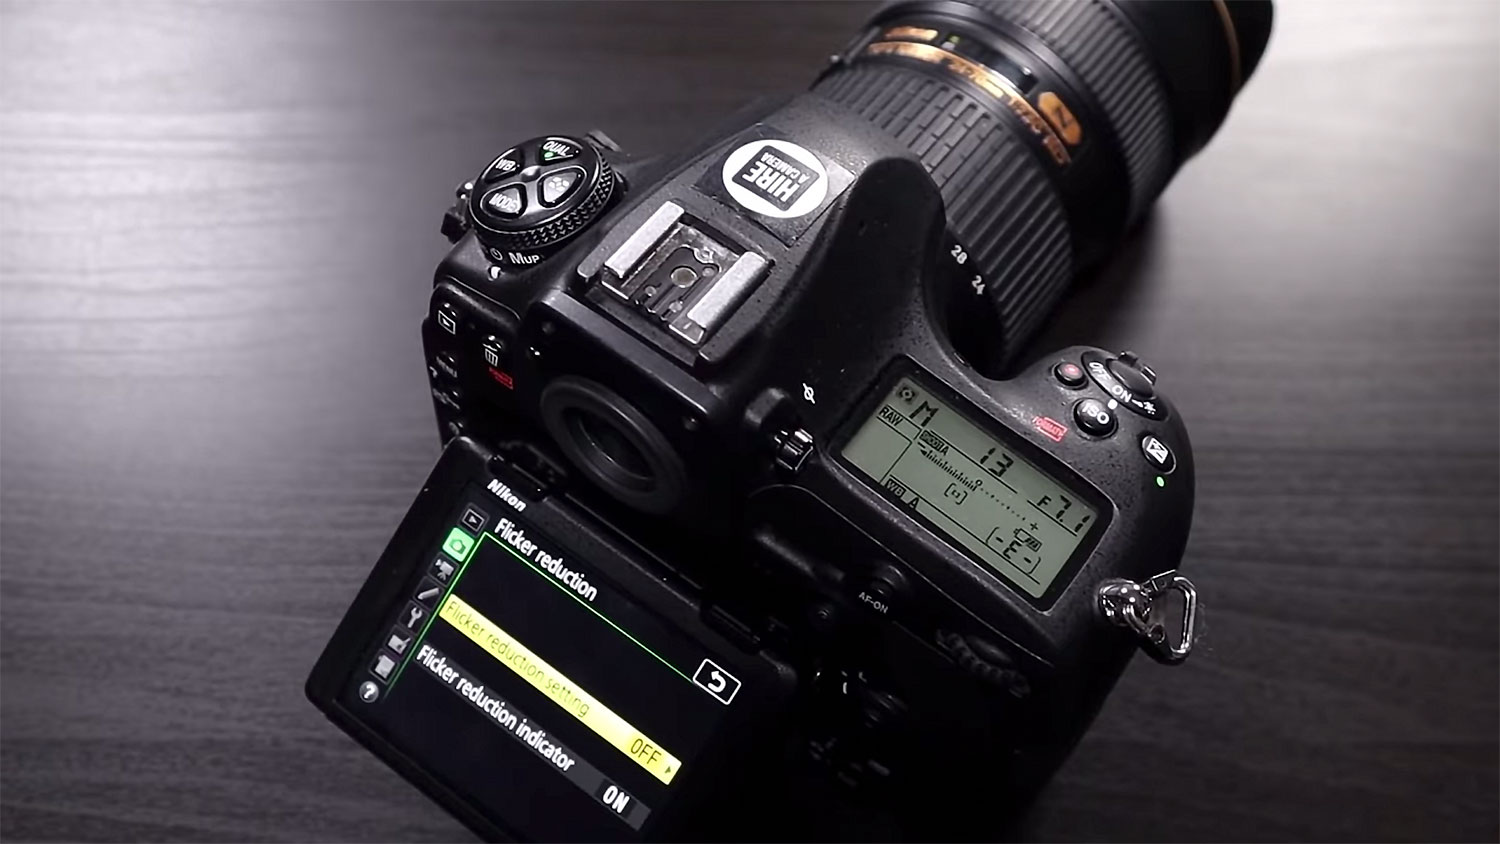 VIDEO: Hands-On Review of the Nikon D850